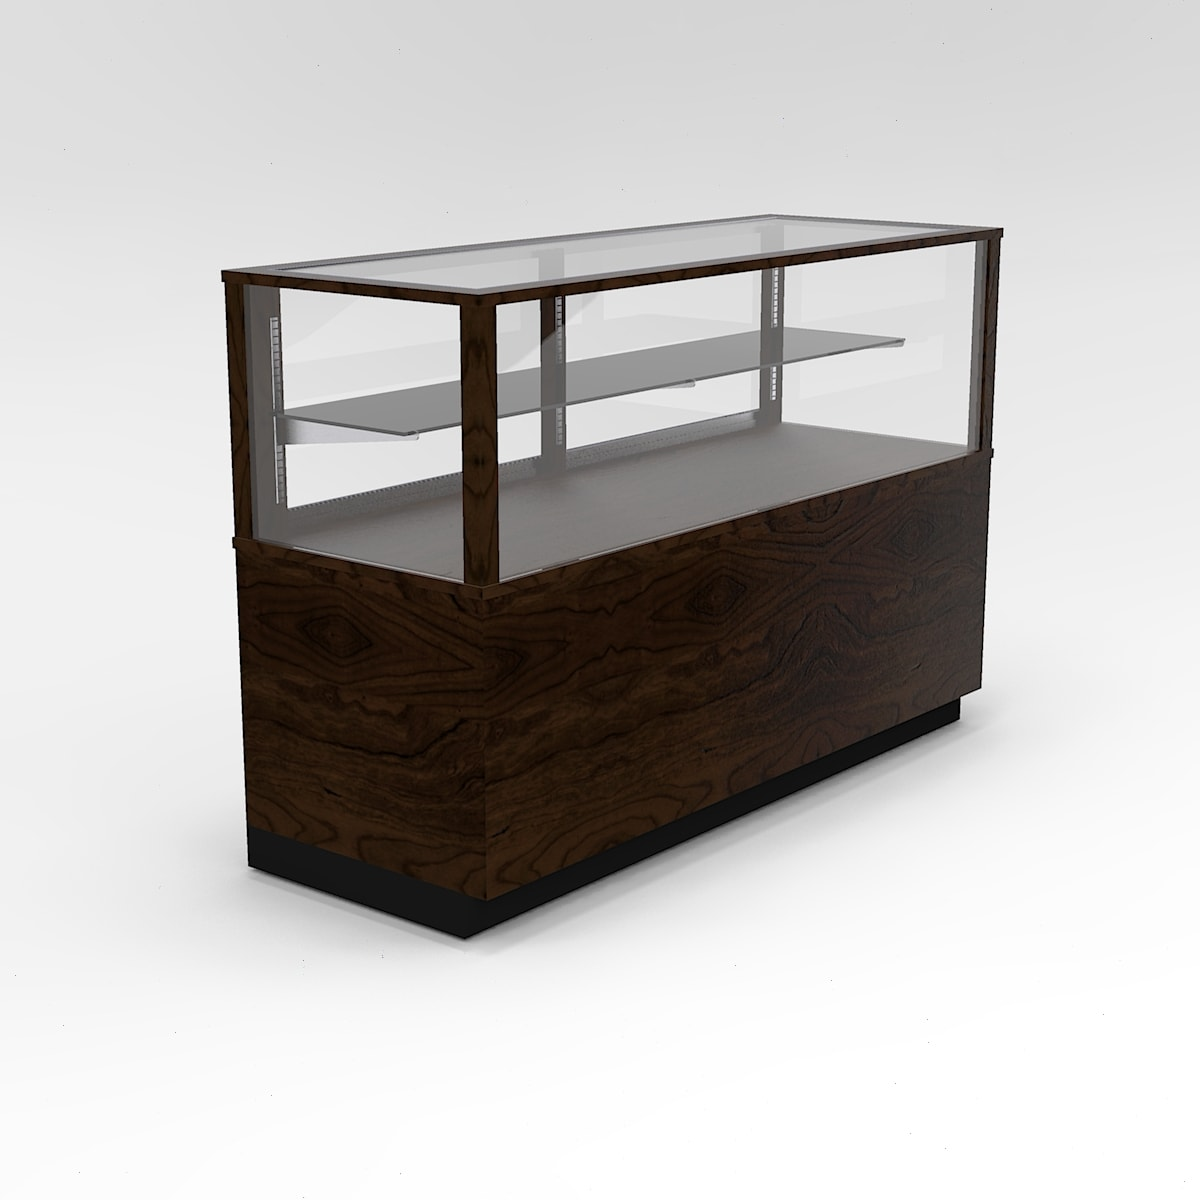 60 Inch Half Vision Contemporary Rectangle Horizontal Display Case To Purchase